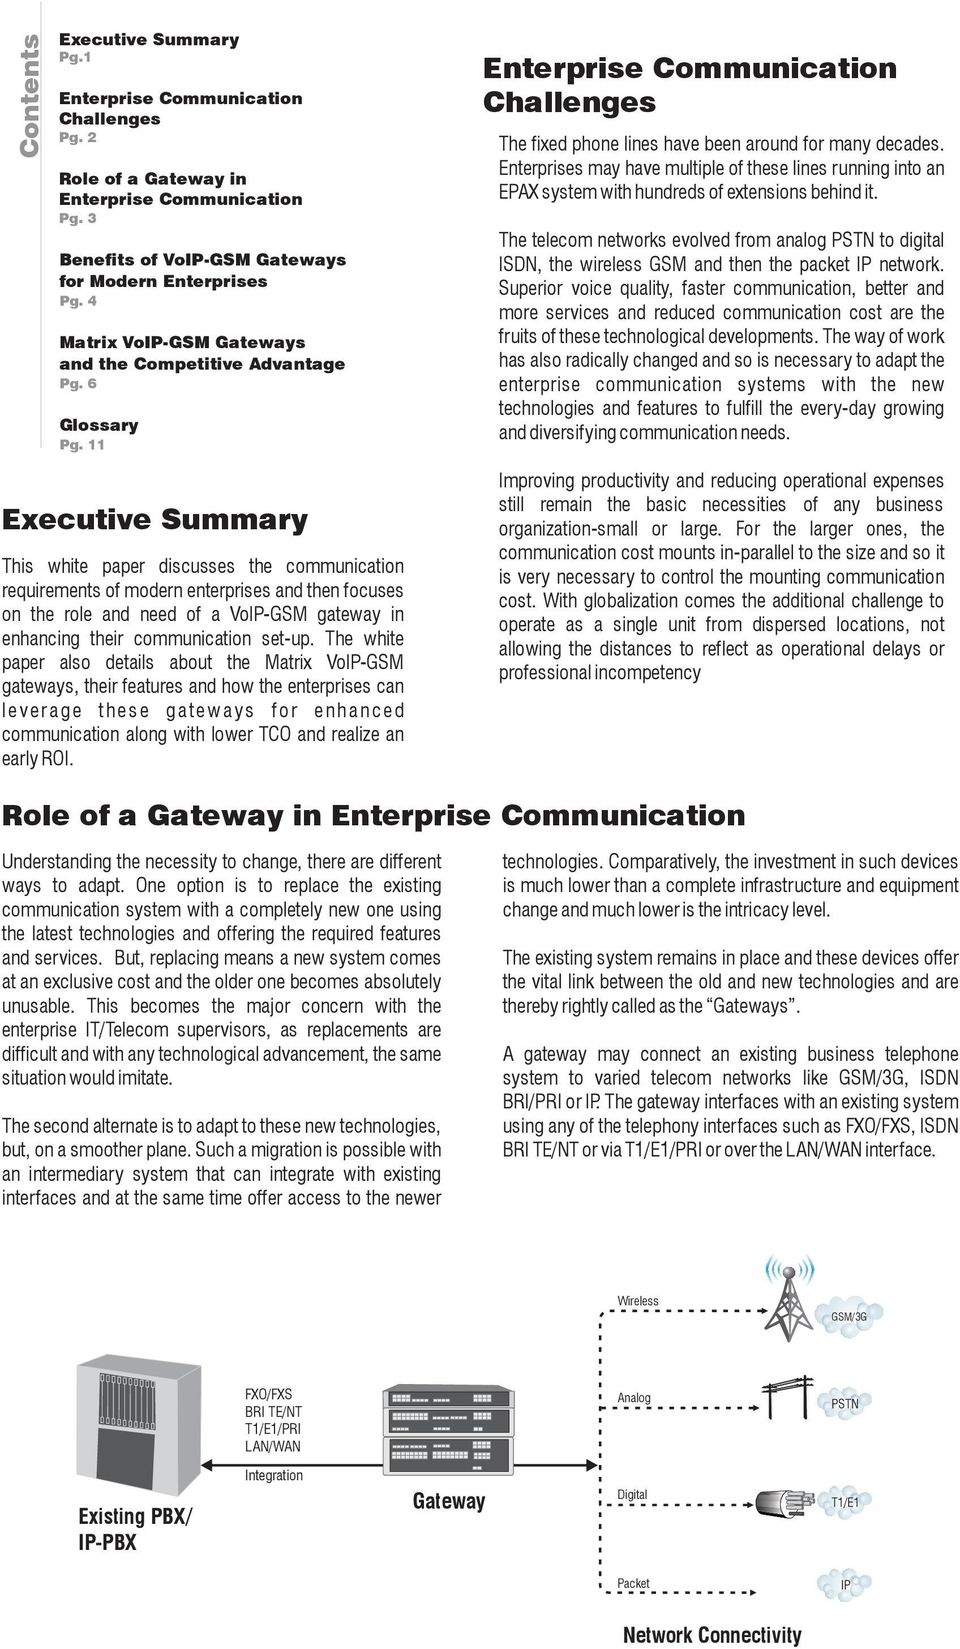 11 Executive Summary This white paper discusses the communication requirements of modern enterprises and then focuses on the role and need of a VoIP-GSM gateway in enhancing their communication